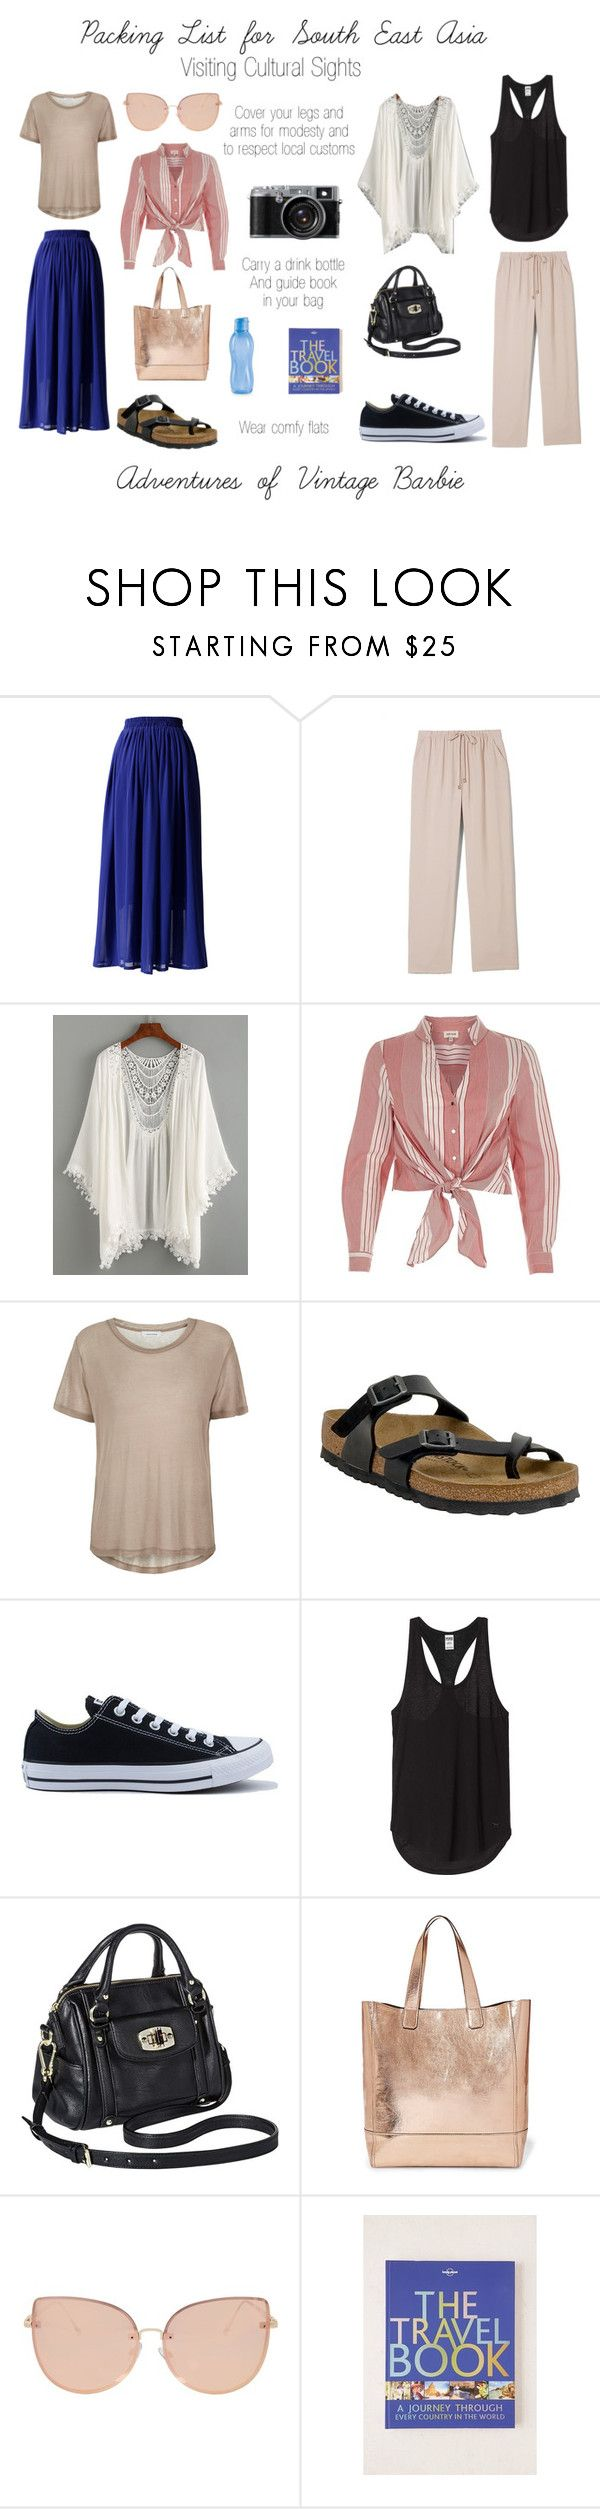 """""""Packing list for South East Asia: Cultural Sights"""" by vintagebarbie17 on Polyvore featuring Chicwish, Vince Camuto, River Island, Samsøe & Samsøe, Birkenstock, Converse, Merona, Steve Madden, Topshop and Lonely Planet"""